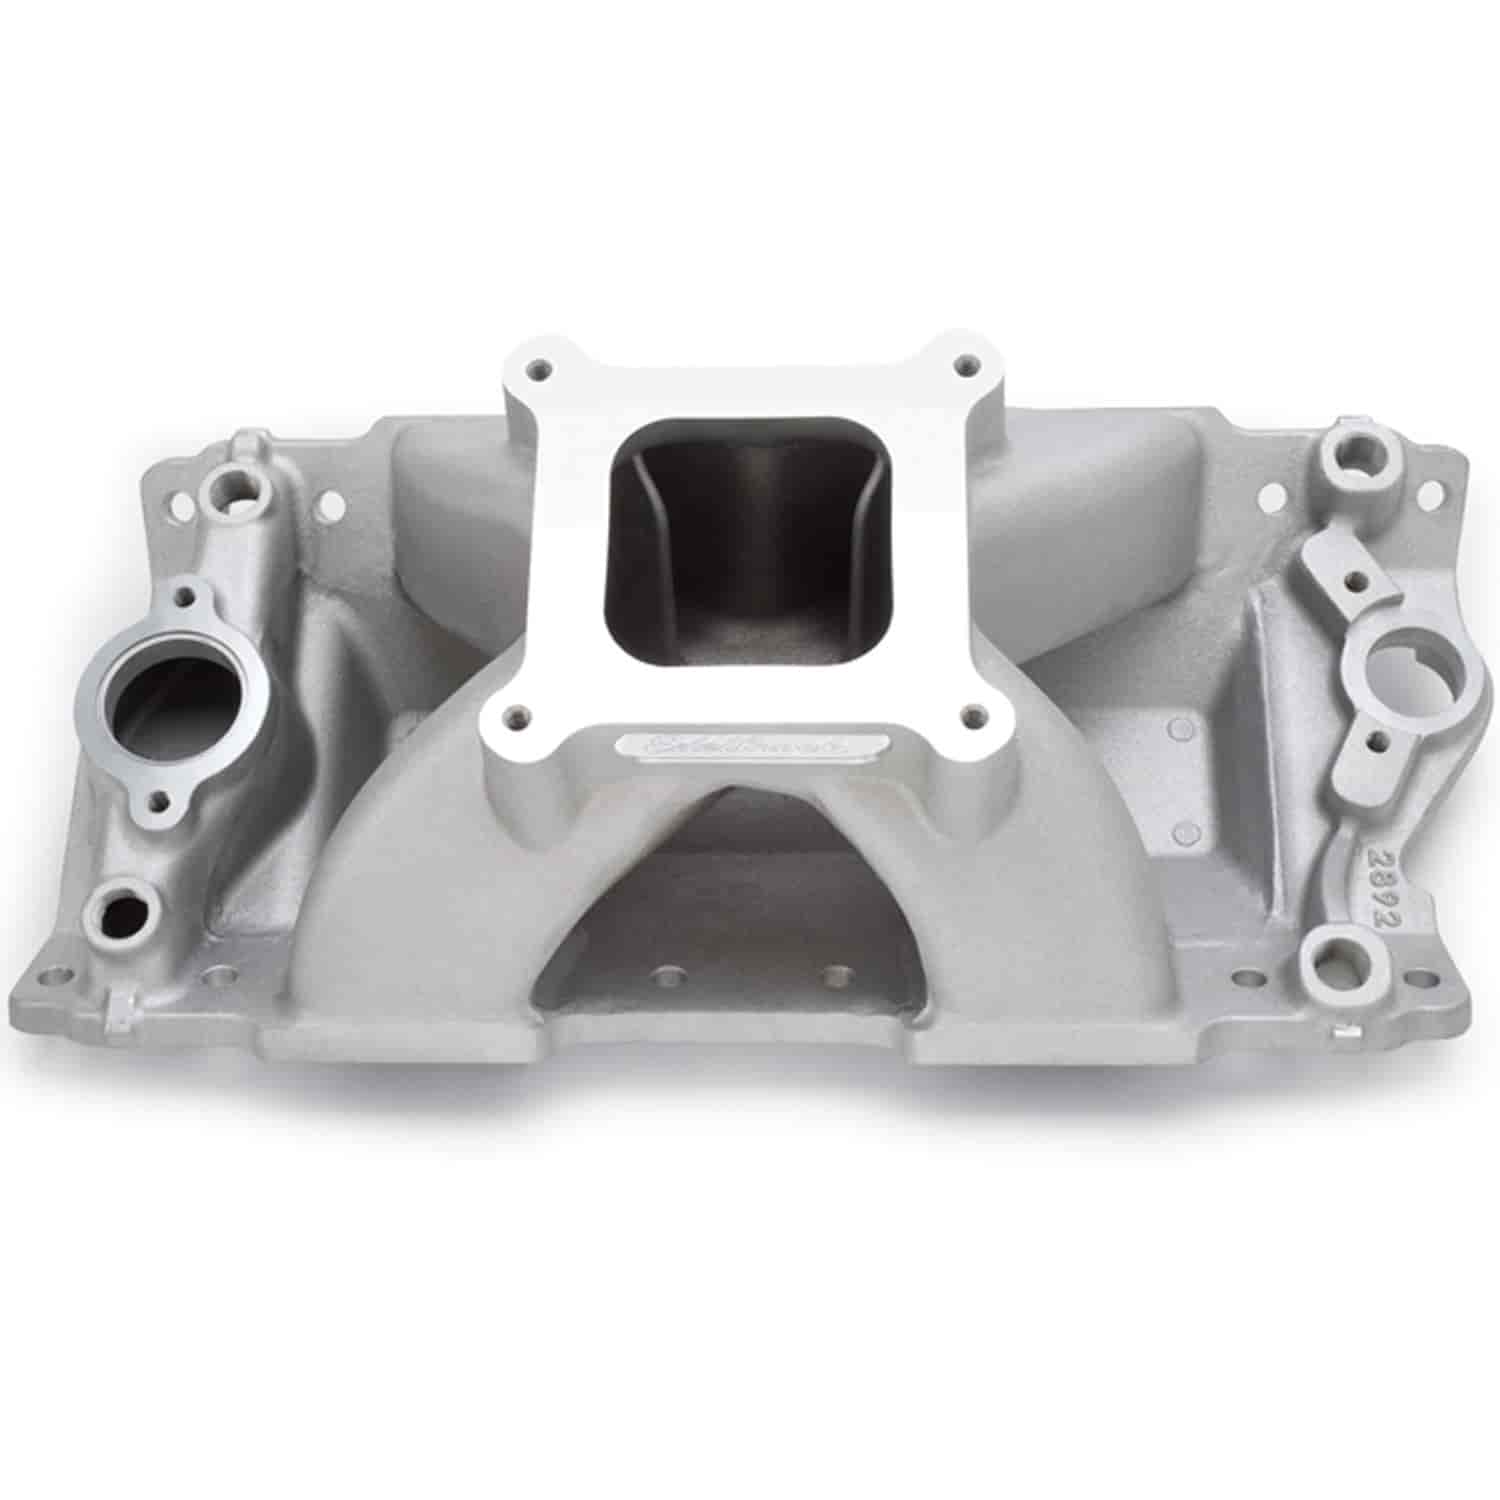 Edelbrock Super Victor II Intake Manifold for Small Block Chevy